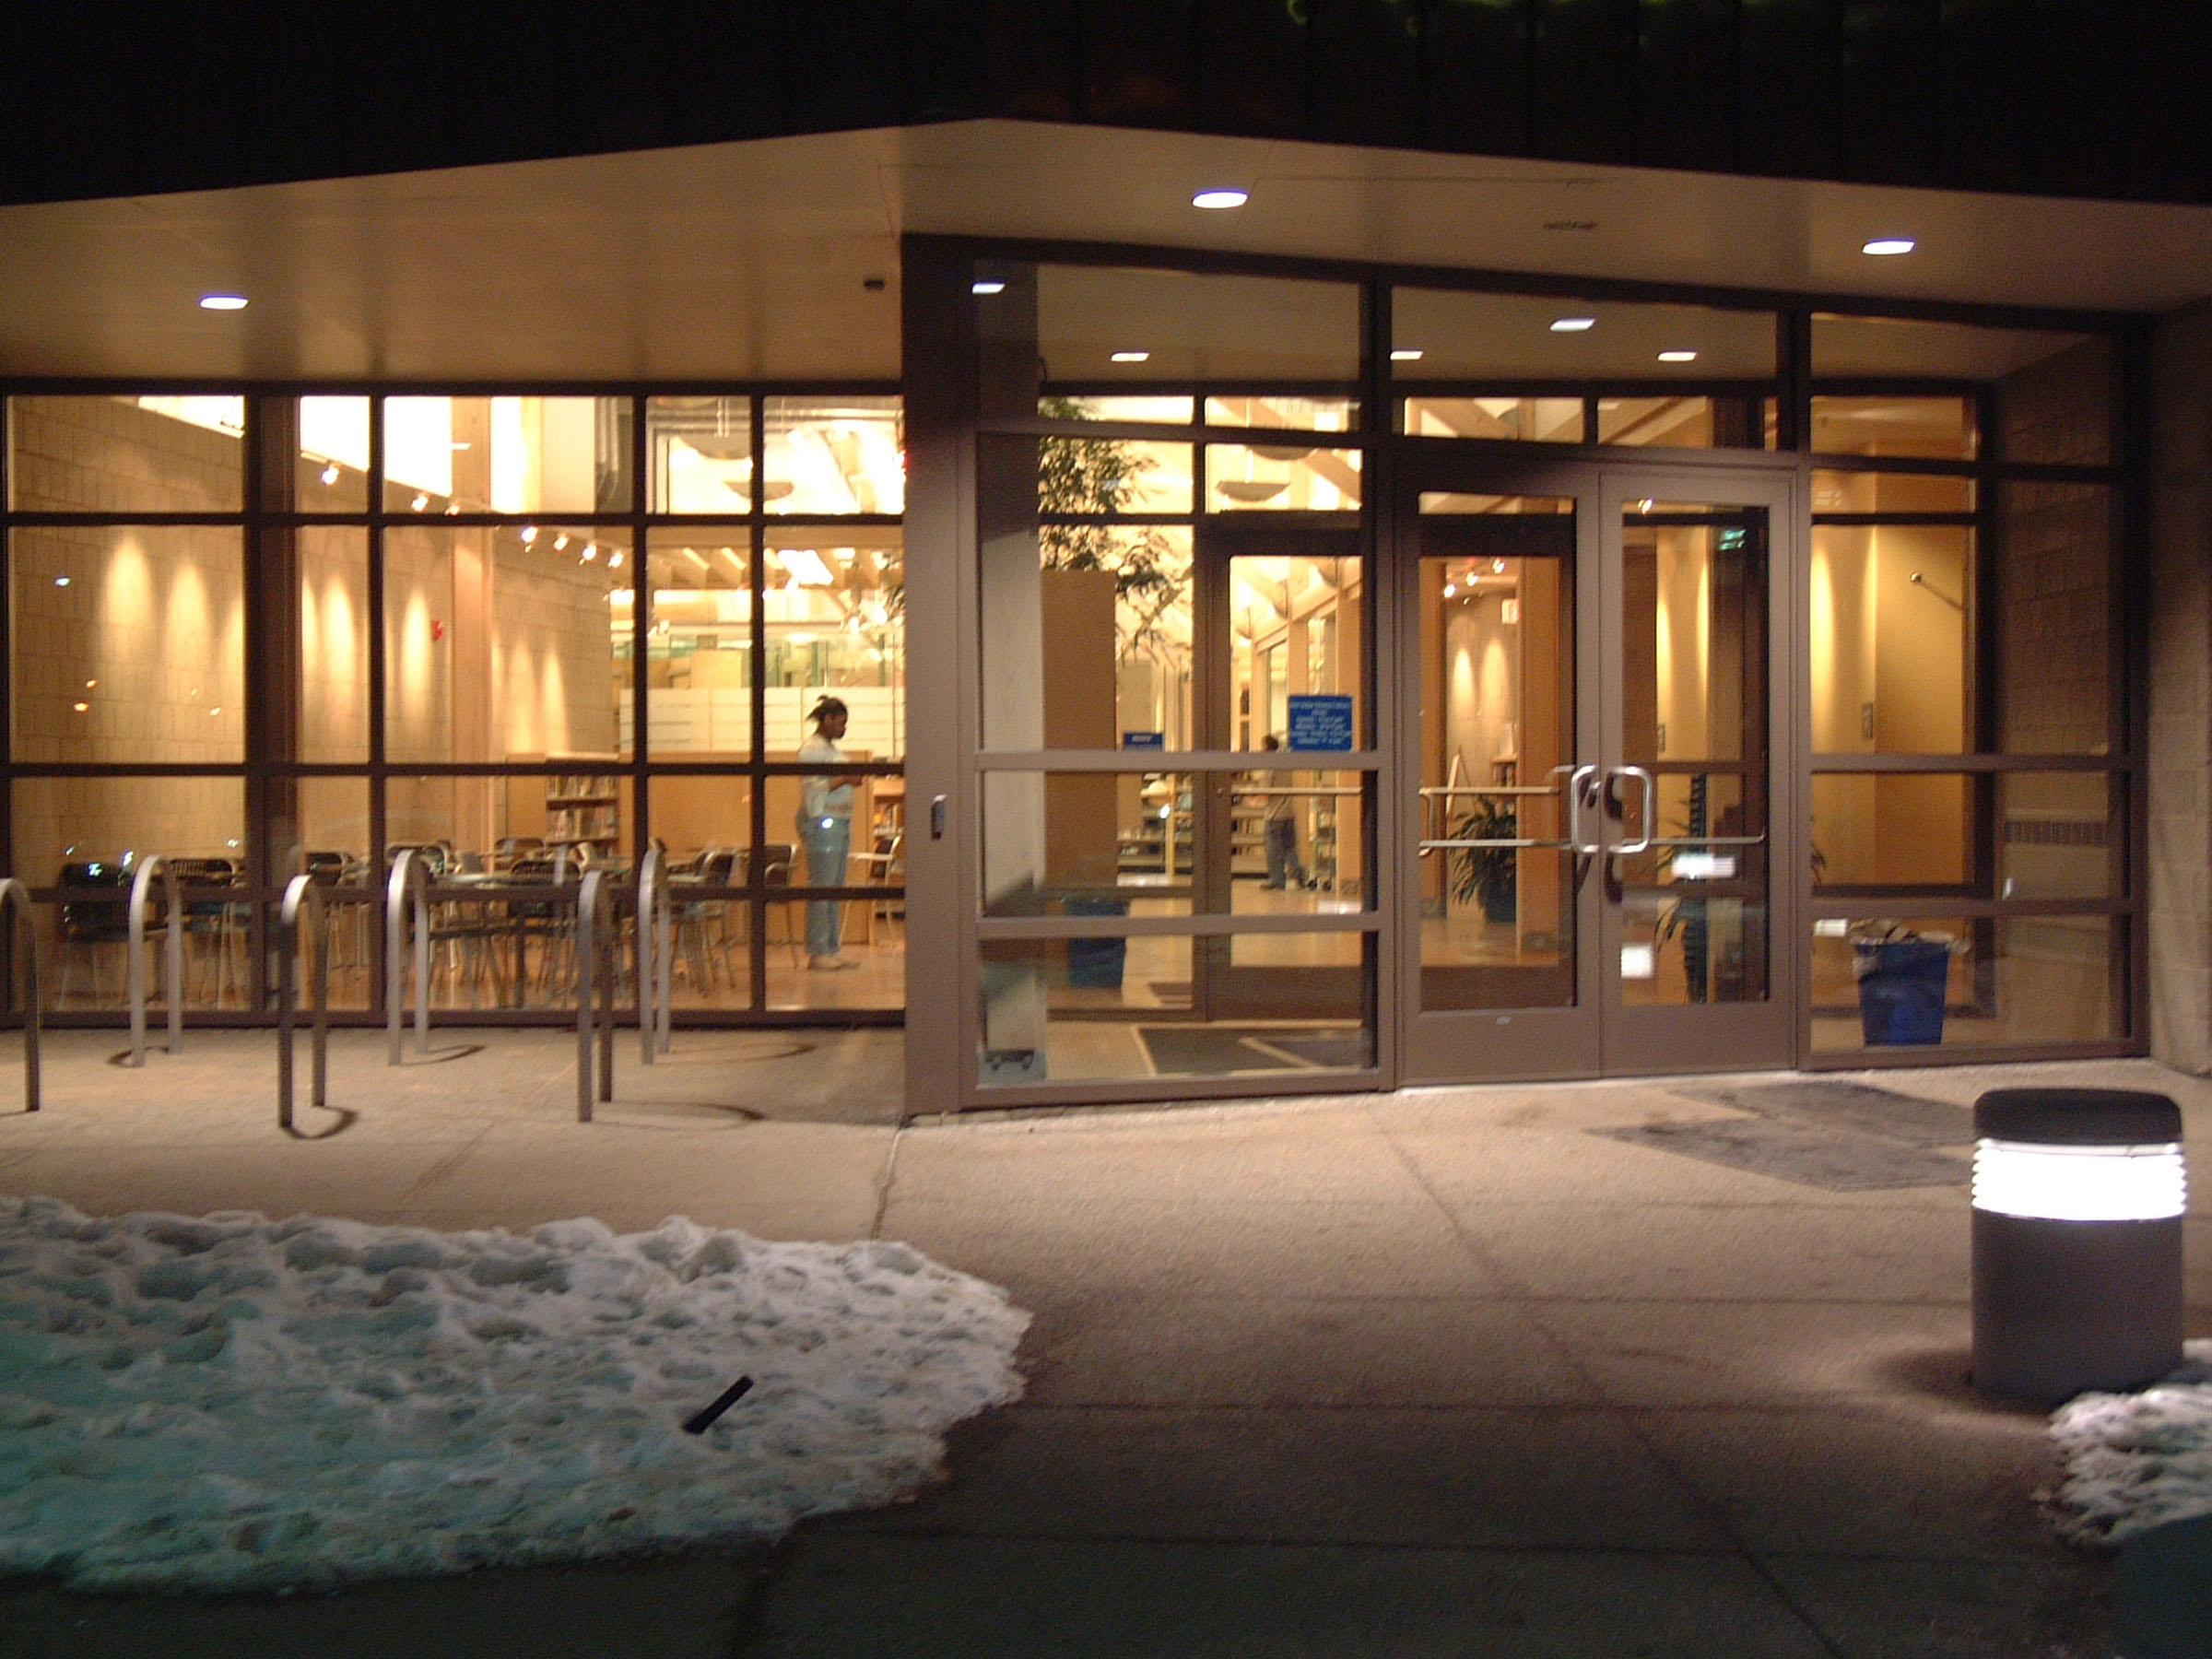 Malletts Creek Branch: Entrance at night, 2003 image